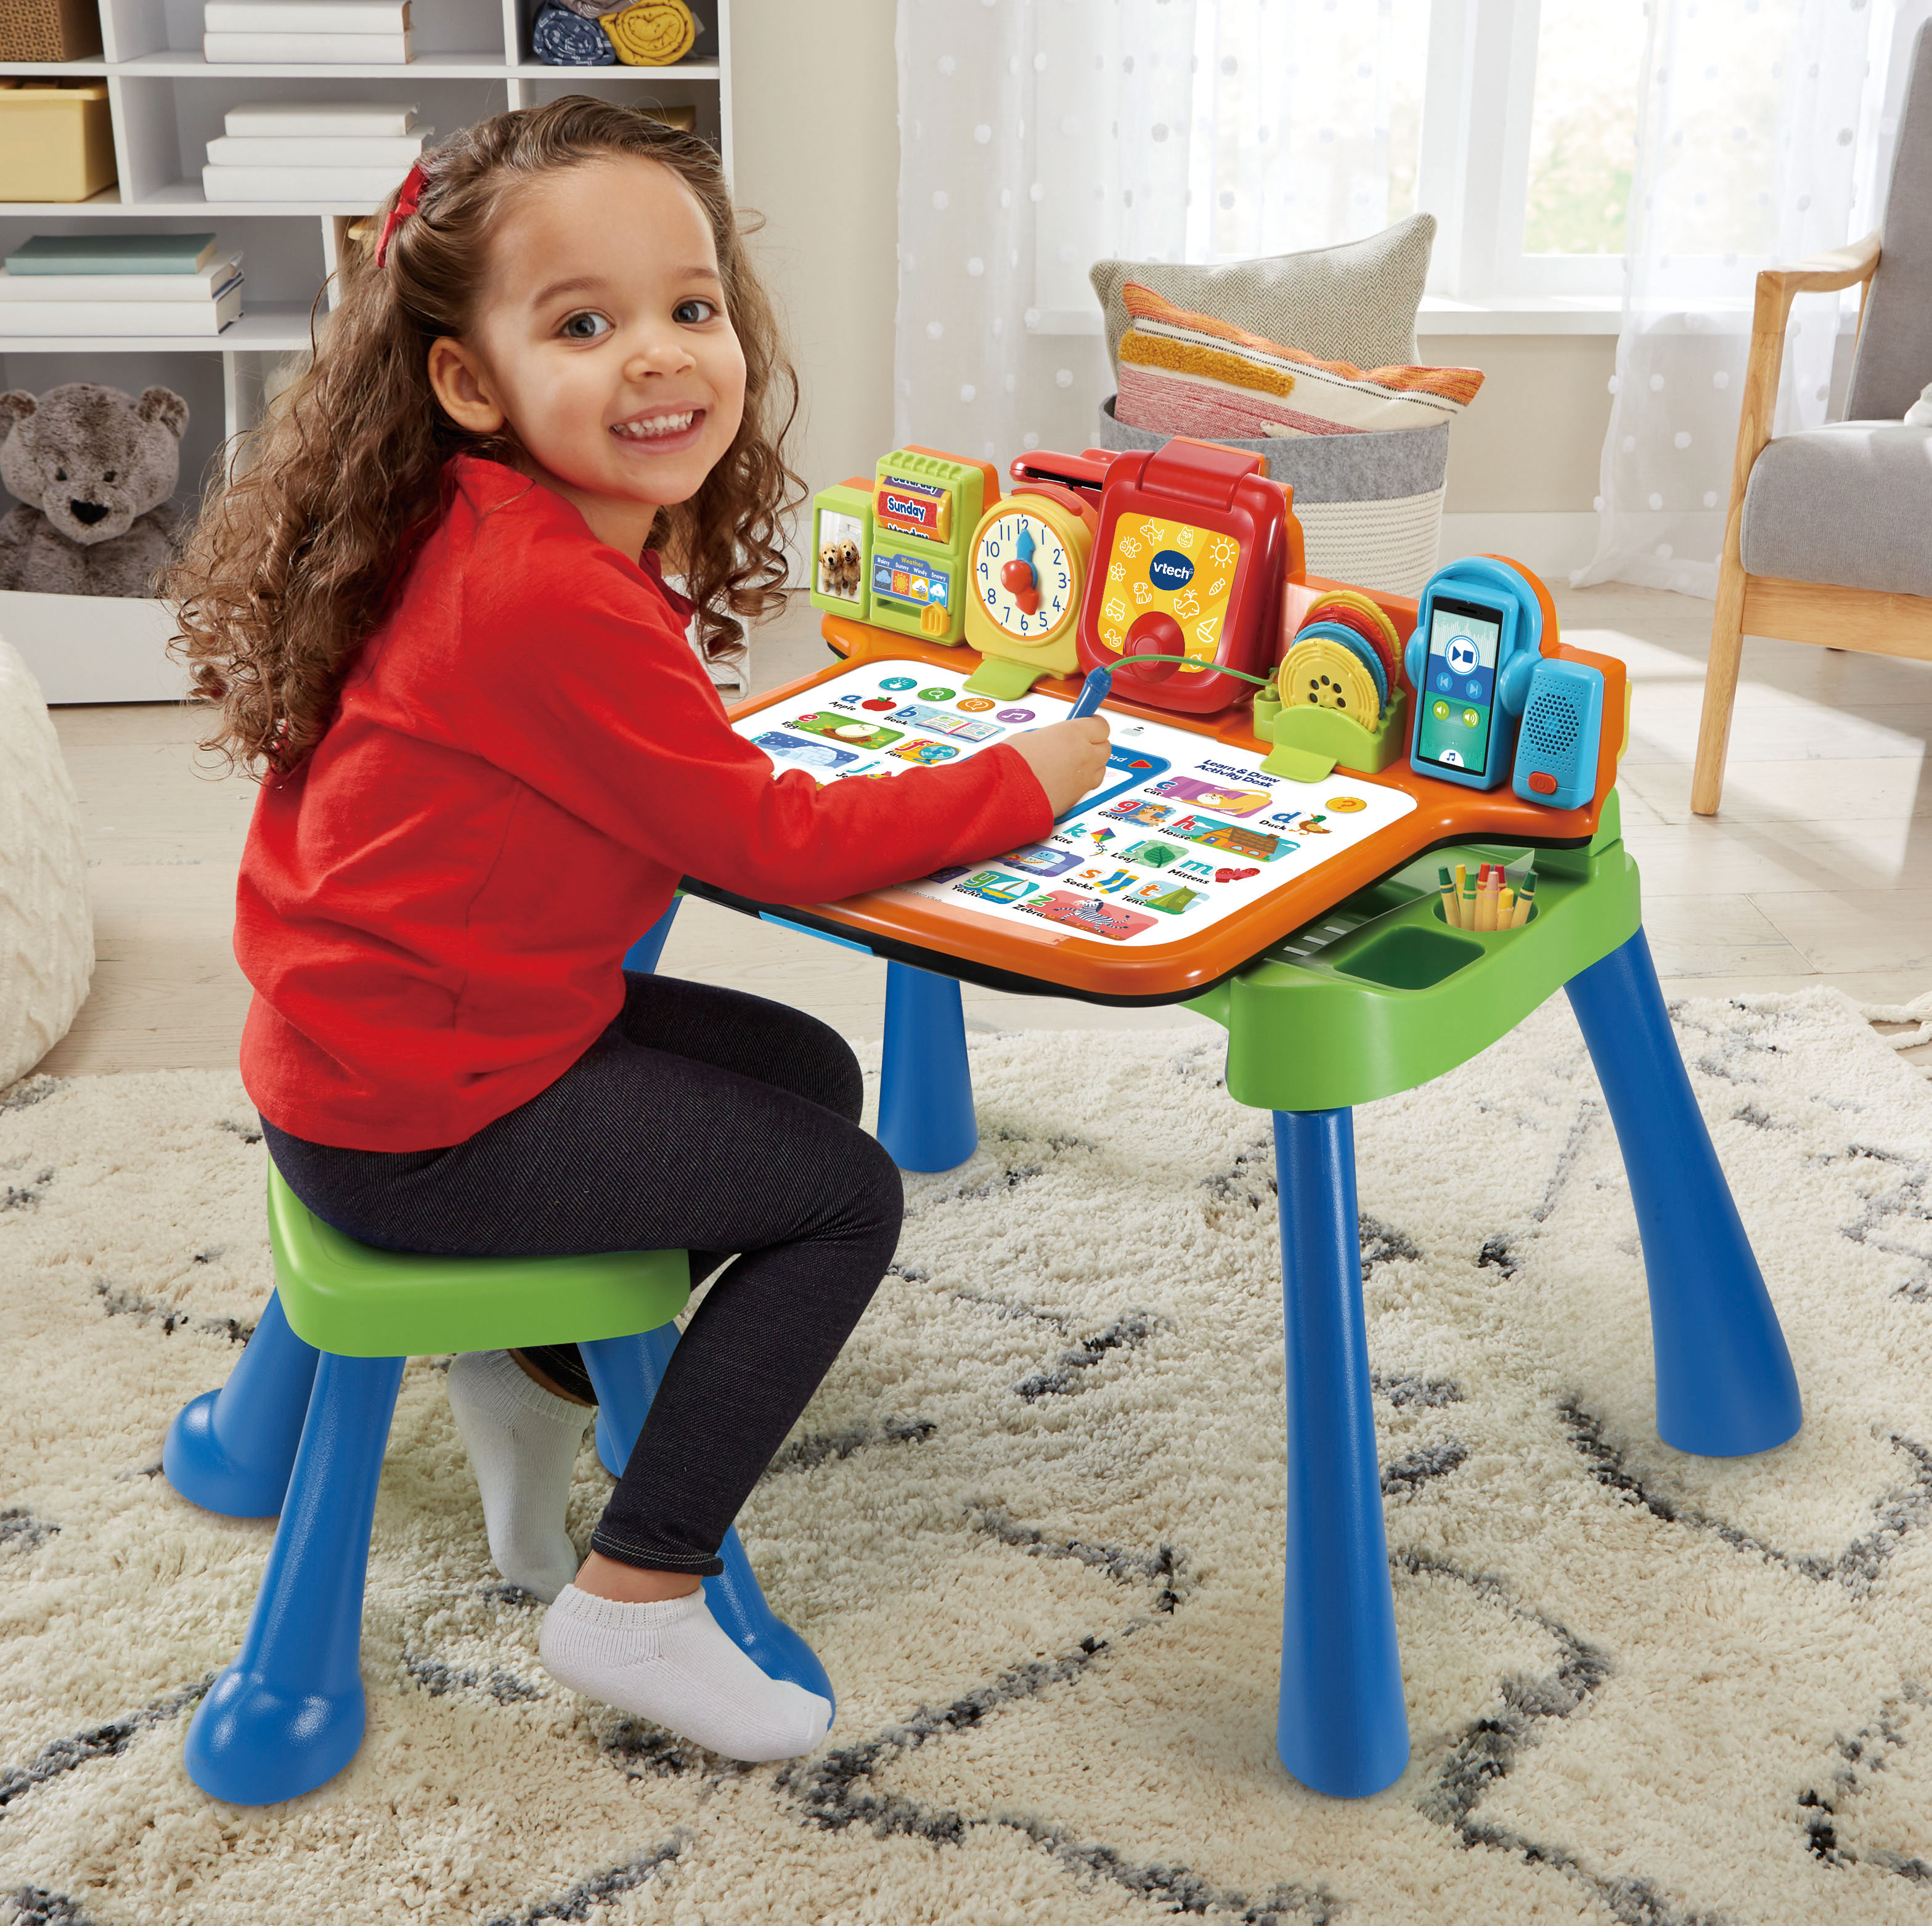 5-in-1 learning desk with stool includes an interactive desktop, projector, LED writing pad with stylus, chalk board and art station.